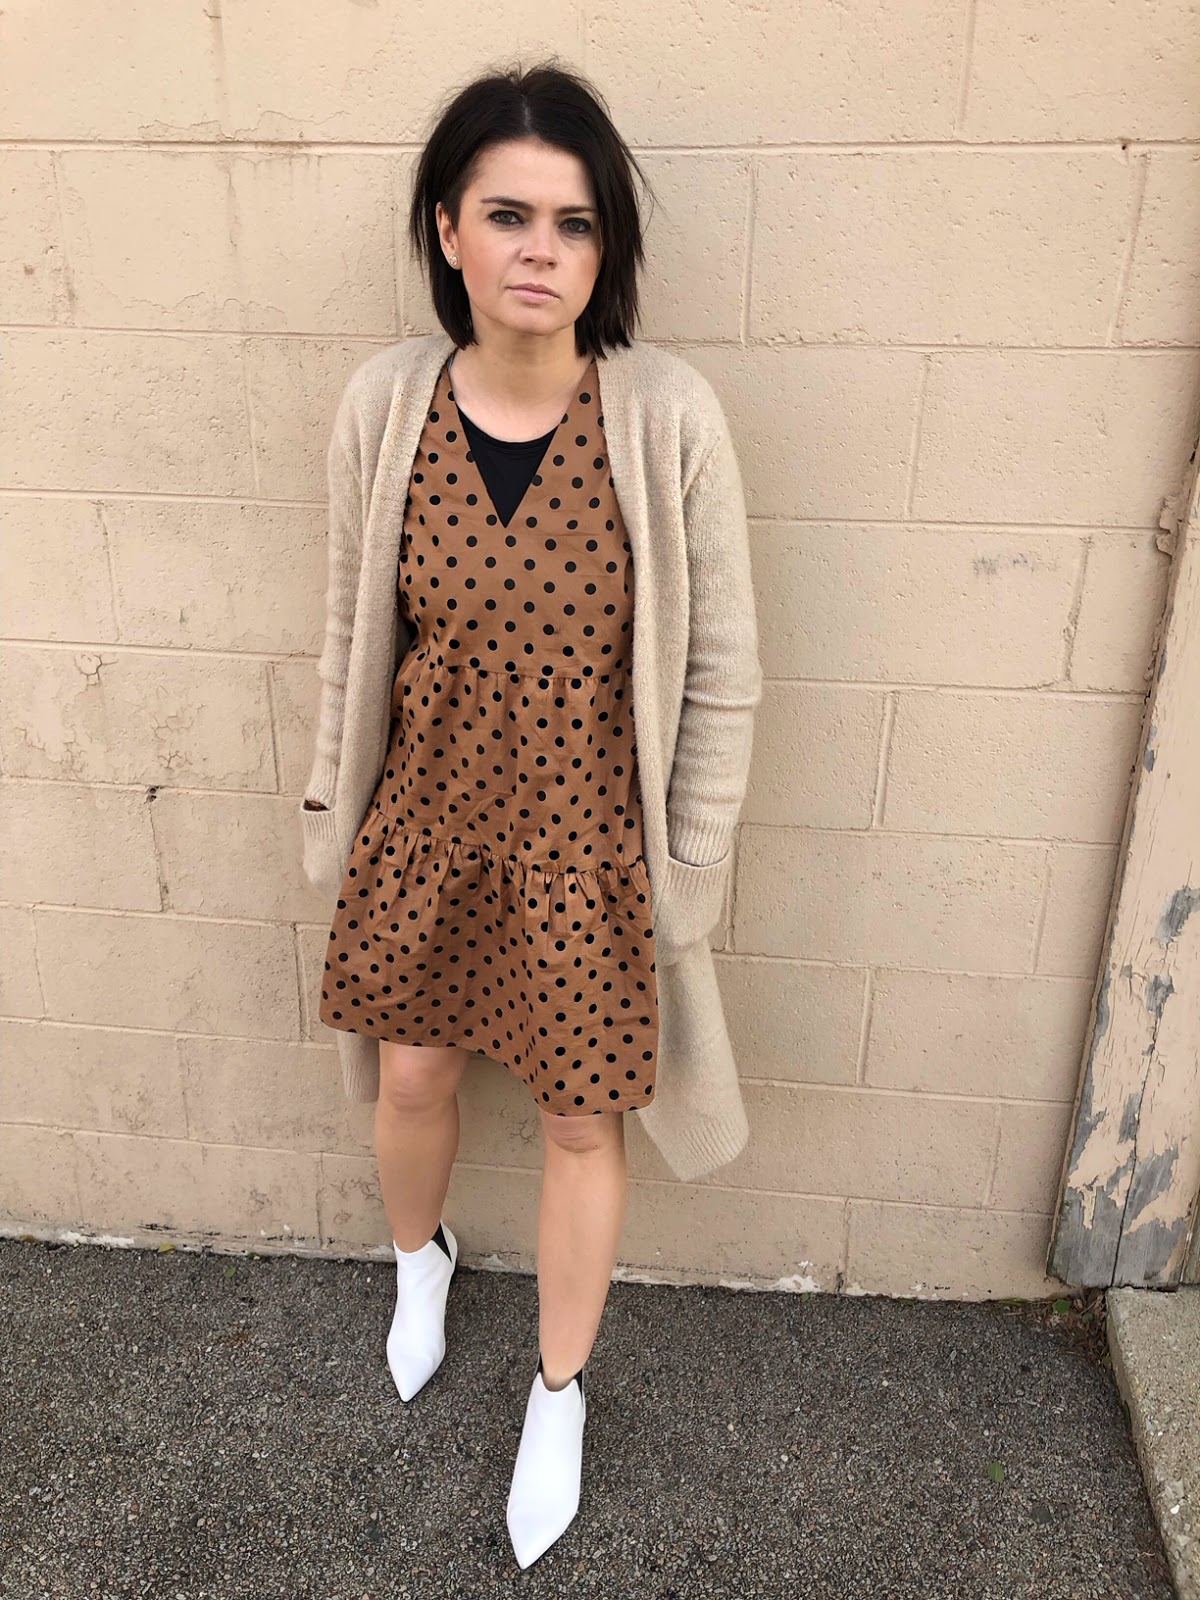 A camel tone dress with black polka dots